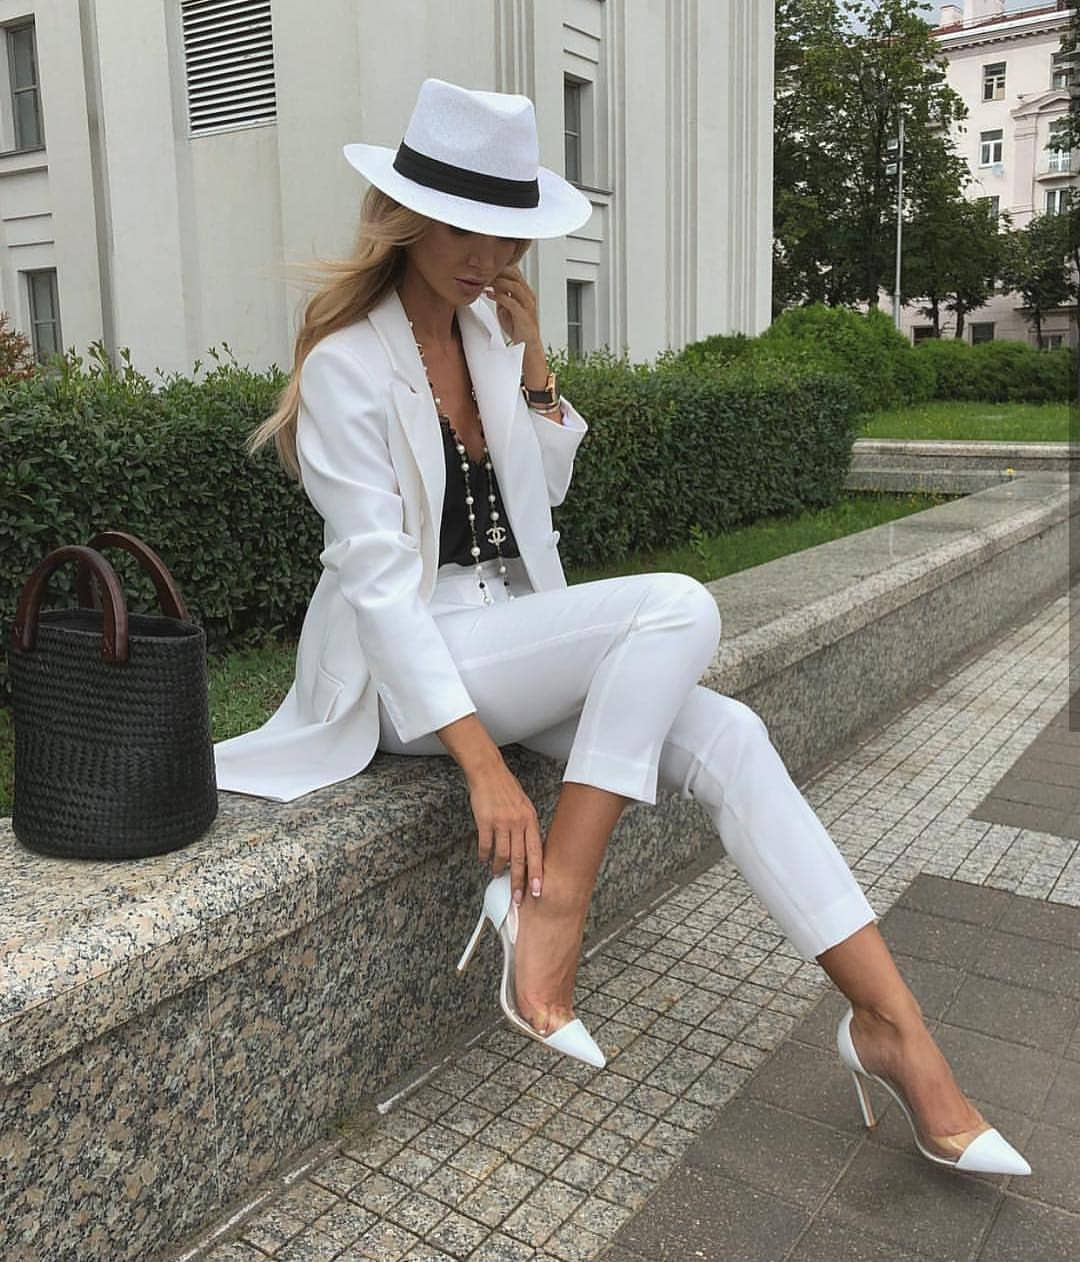 All White Pantsuit For Summer: Panama Hat, Pointy Heels And Black Straw Bucket Bag 2019